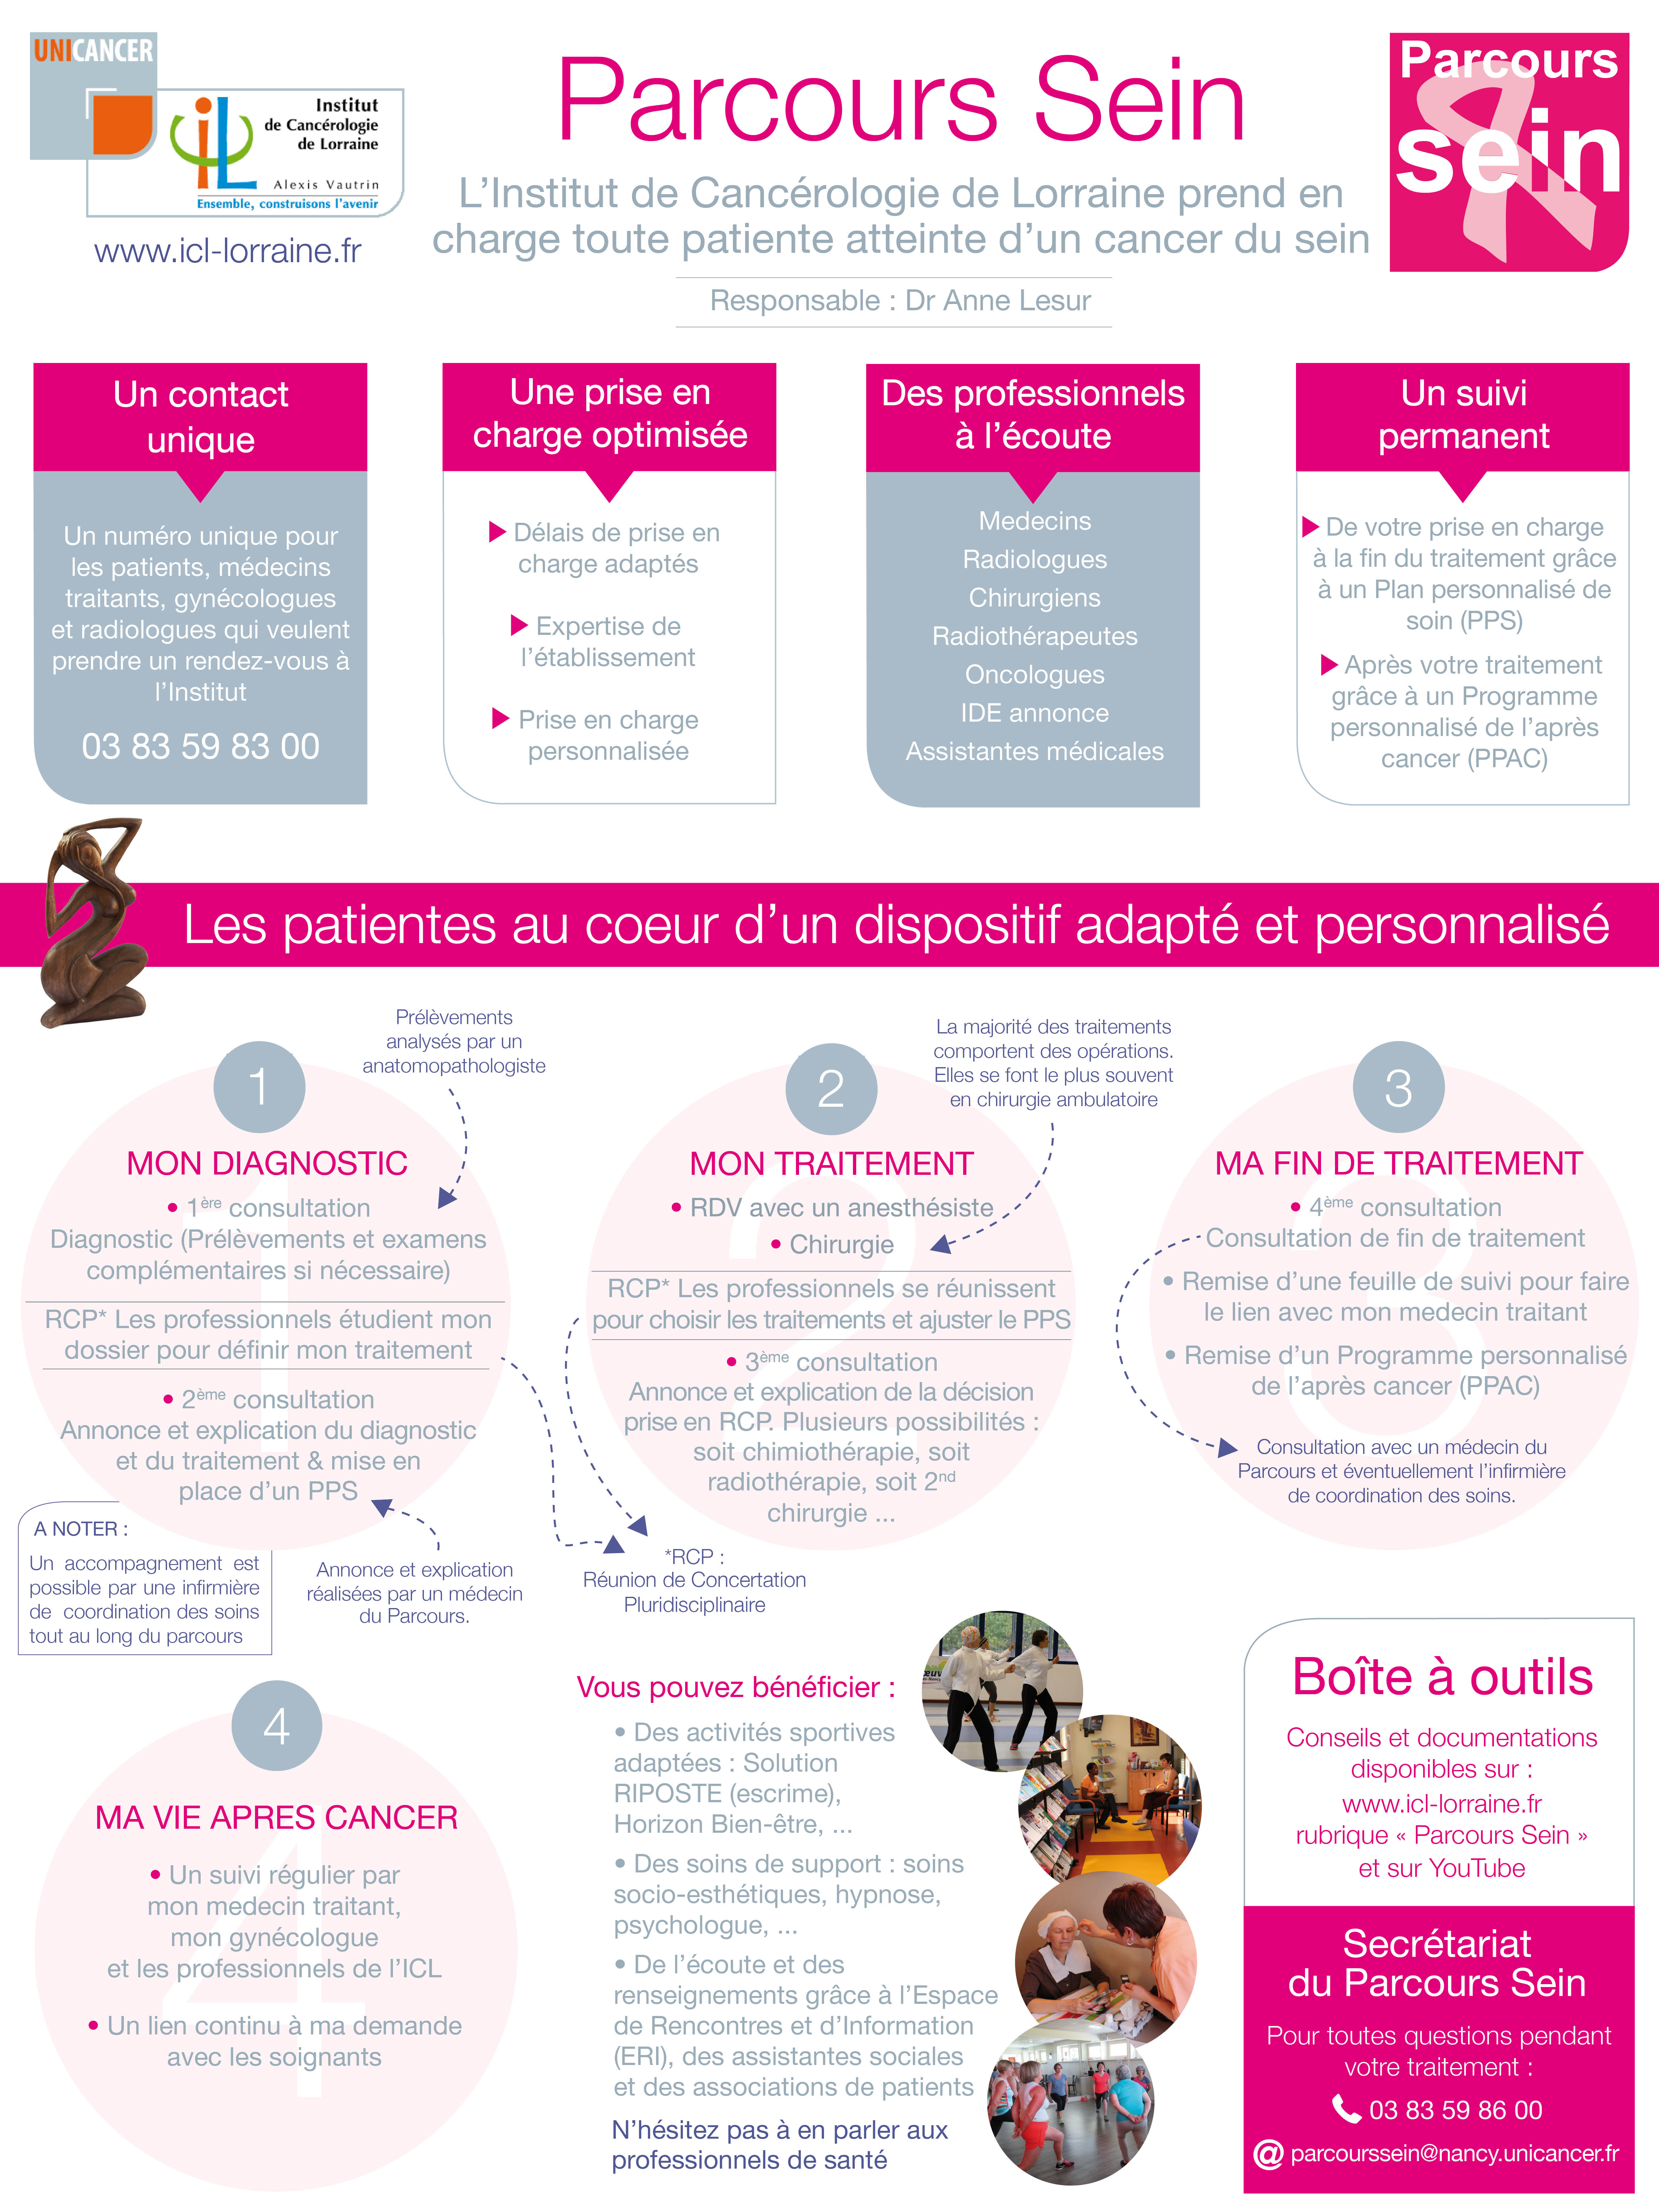 Poster Parcours SeinICL